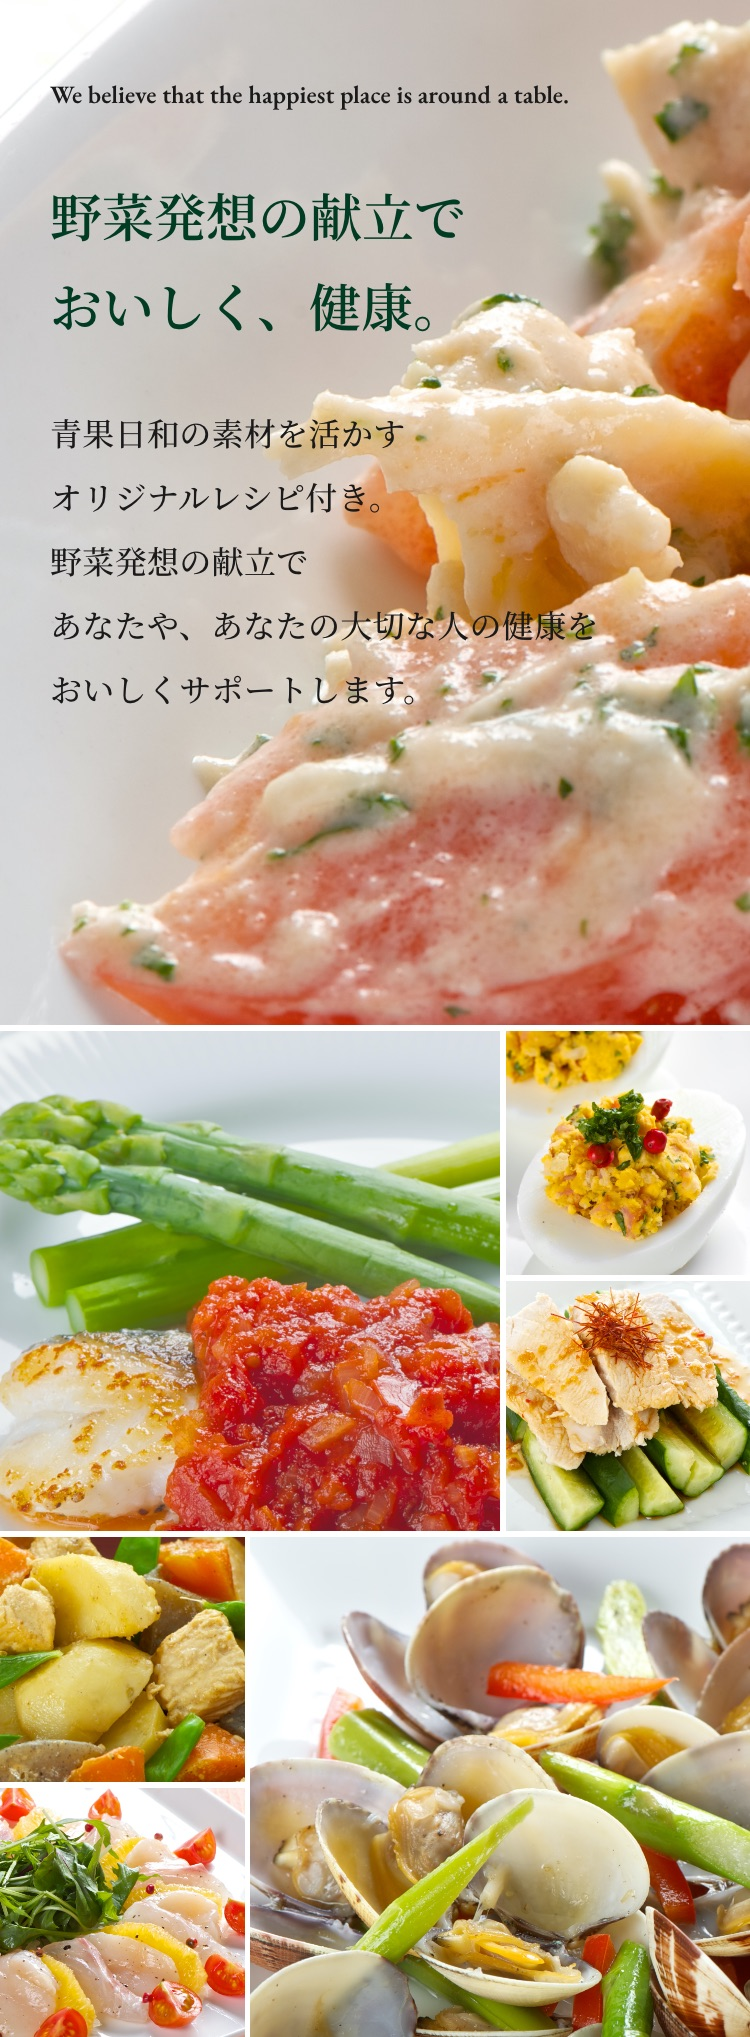 We believe that the happiest place is around a table.野菜発想の献立で おいしく、健康。青果日和の素材を活かす オリジナルレシピ付き。 野菜発想の献立で あなたや、あなたの大切な人の健康を おいしくサポートします。